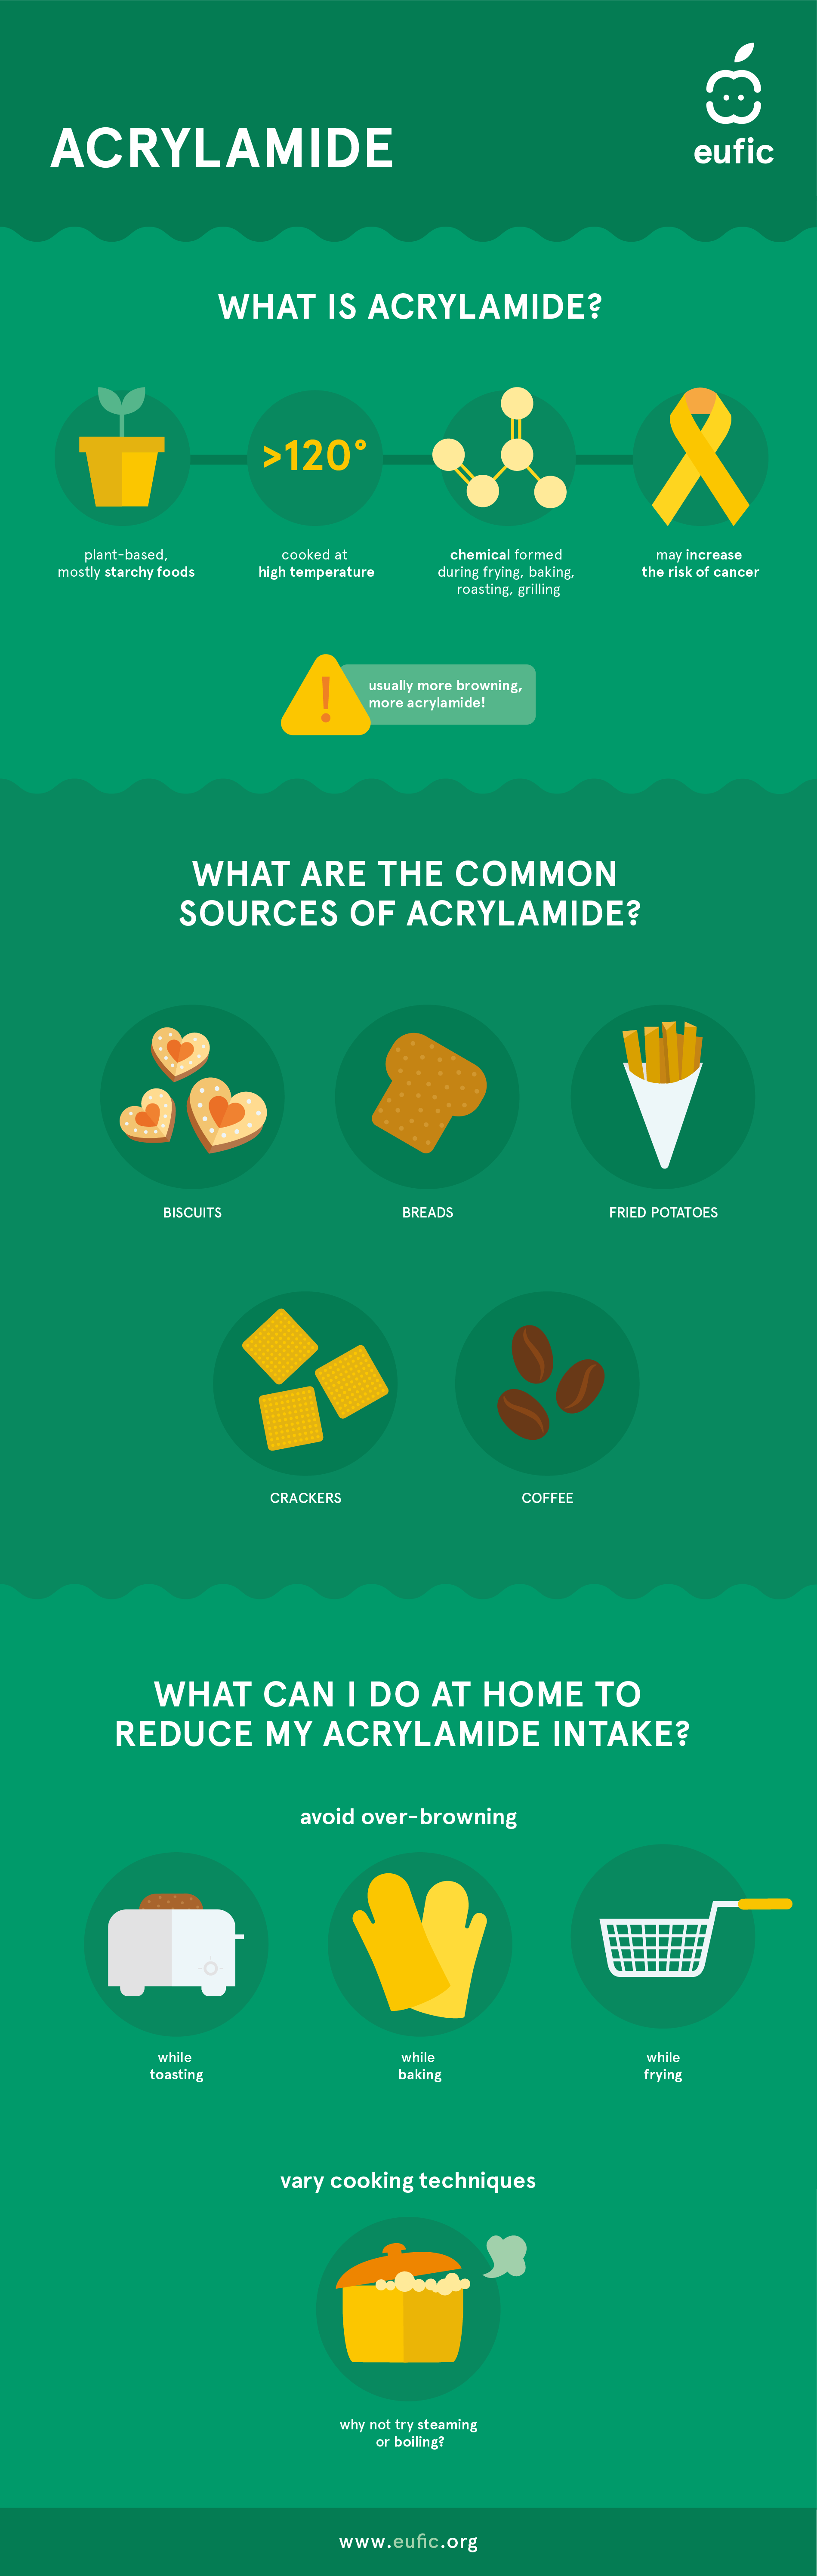 How to reduce acrylamide formation at home